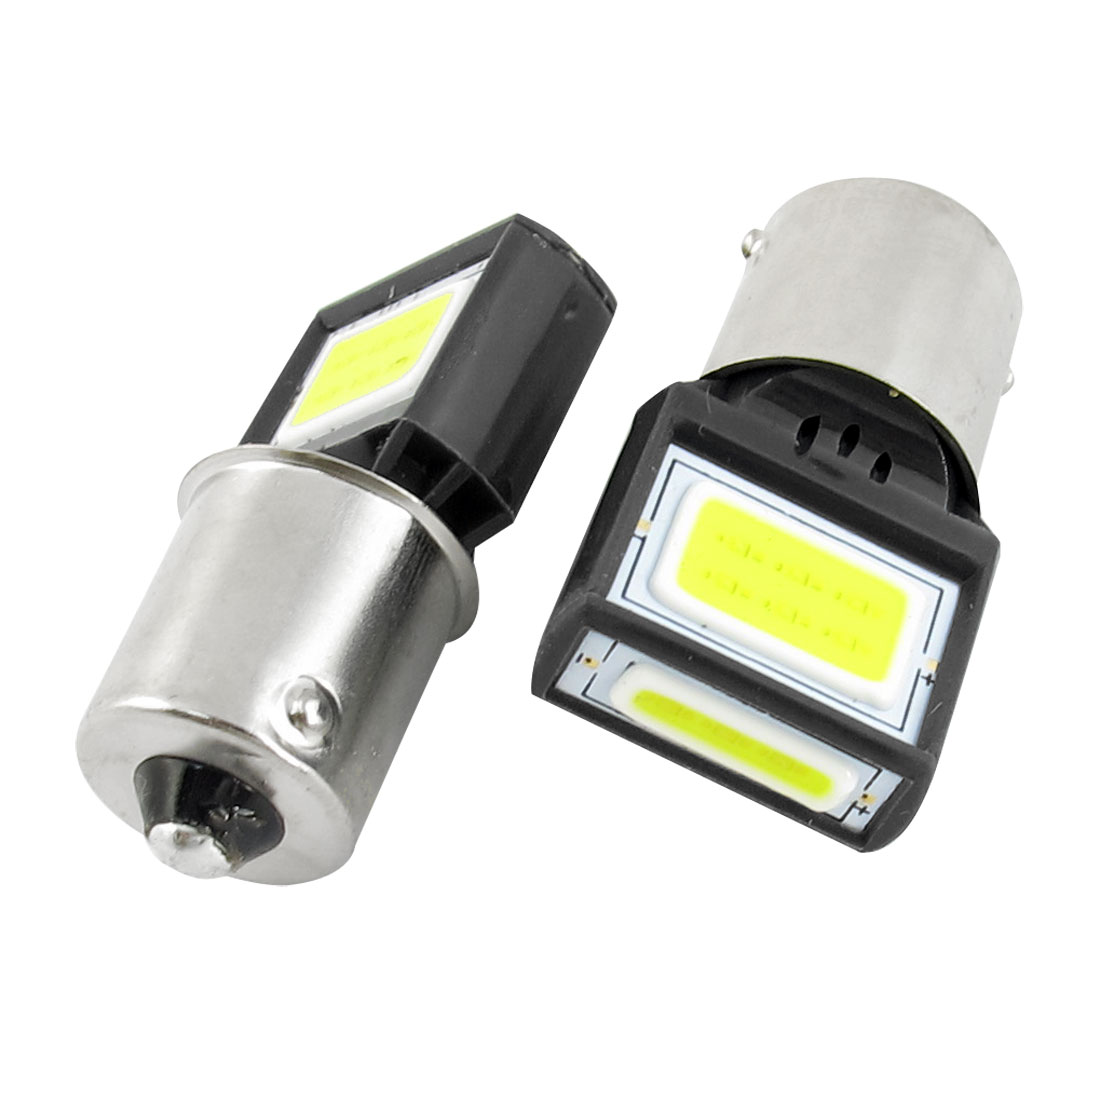 2 Pcs 1156 White 15 COB Car Braking Tail Projector Lens Light Bulb 8W